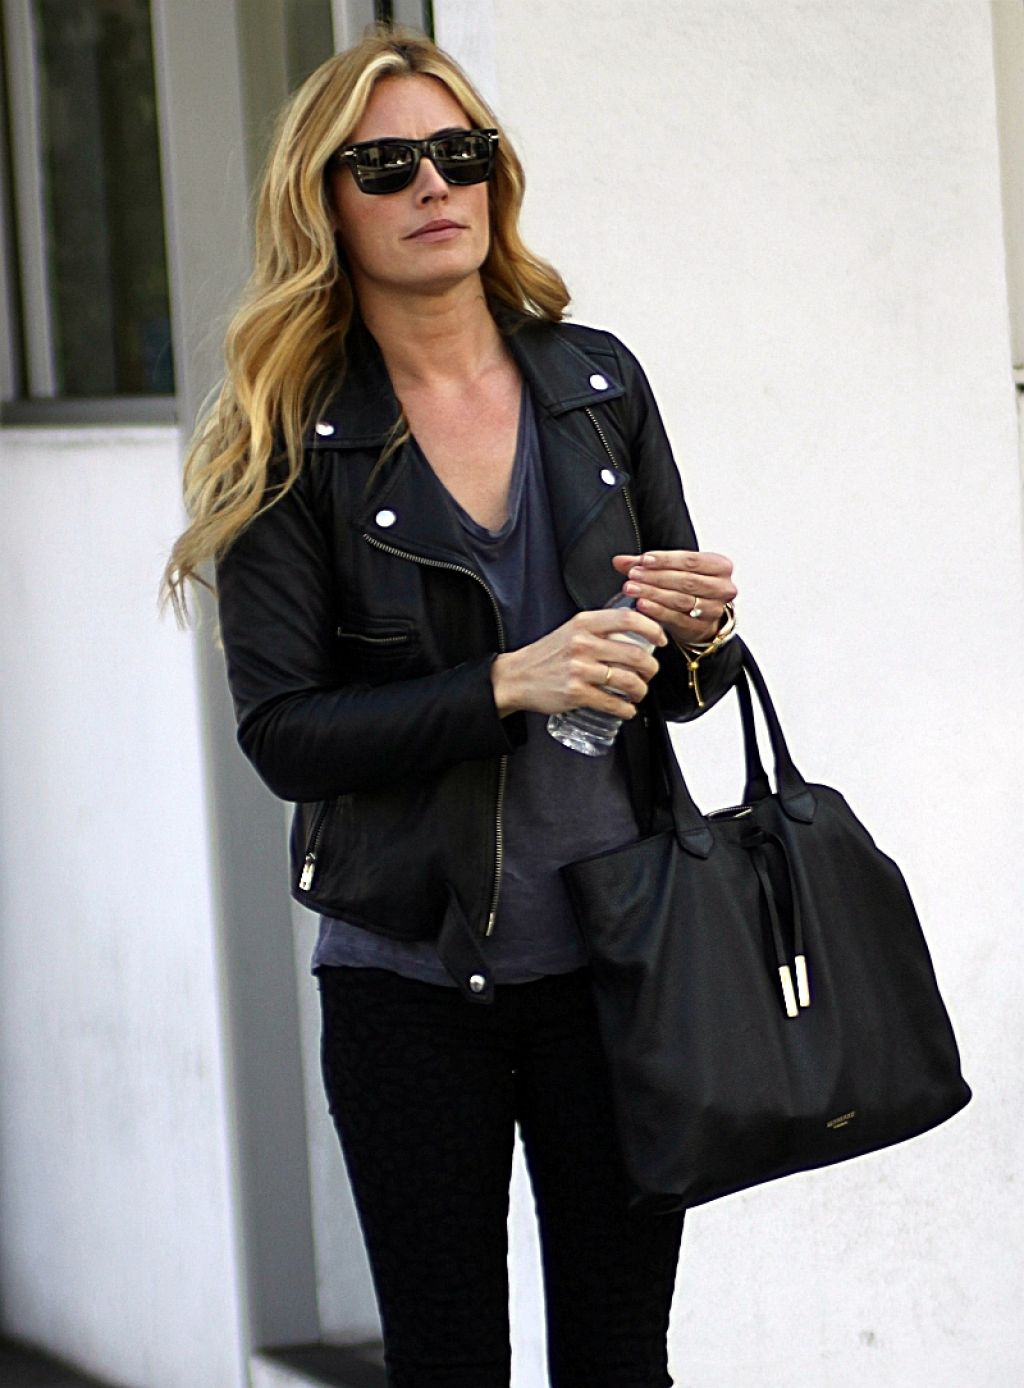 Cat Deeley Street Style - Hoing to Lunch in Beverly Hills - February 2014